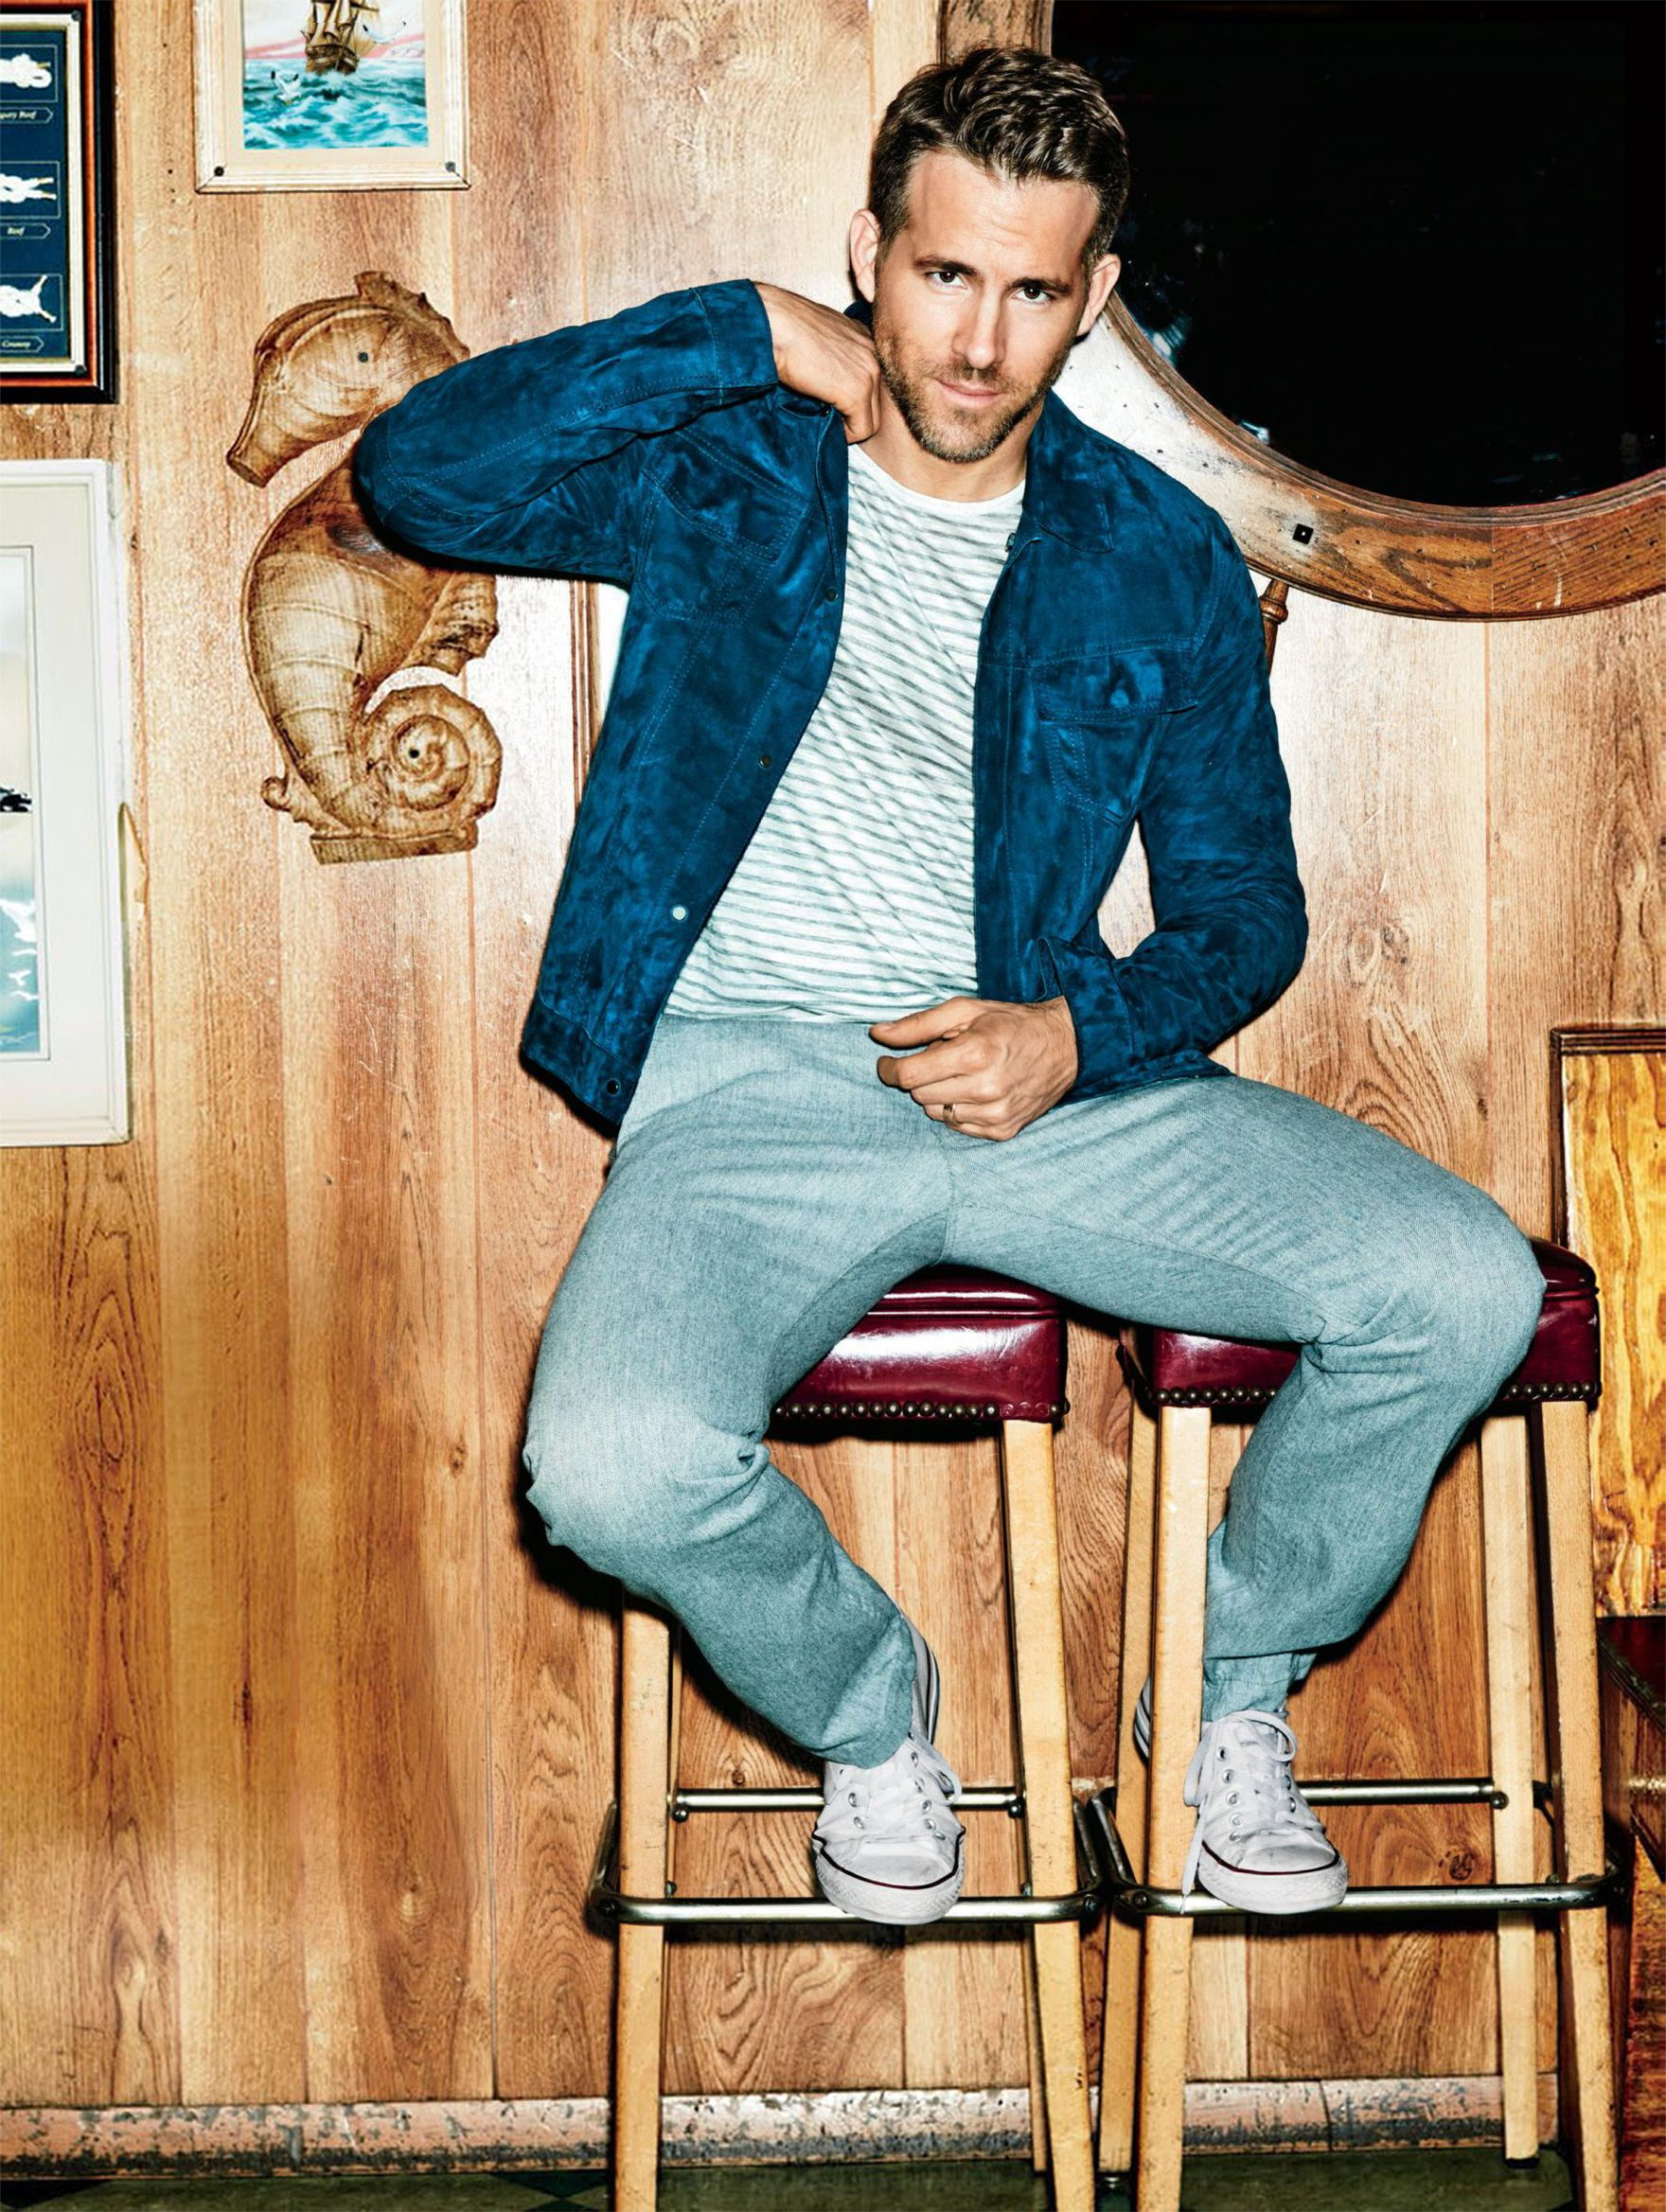 mens health style ryan reynolds google search actrices sexys galanes hombres hermosos